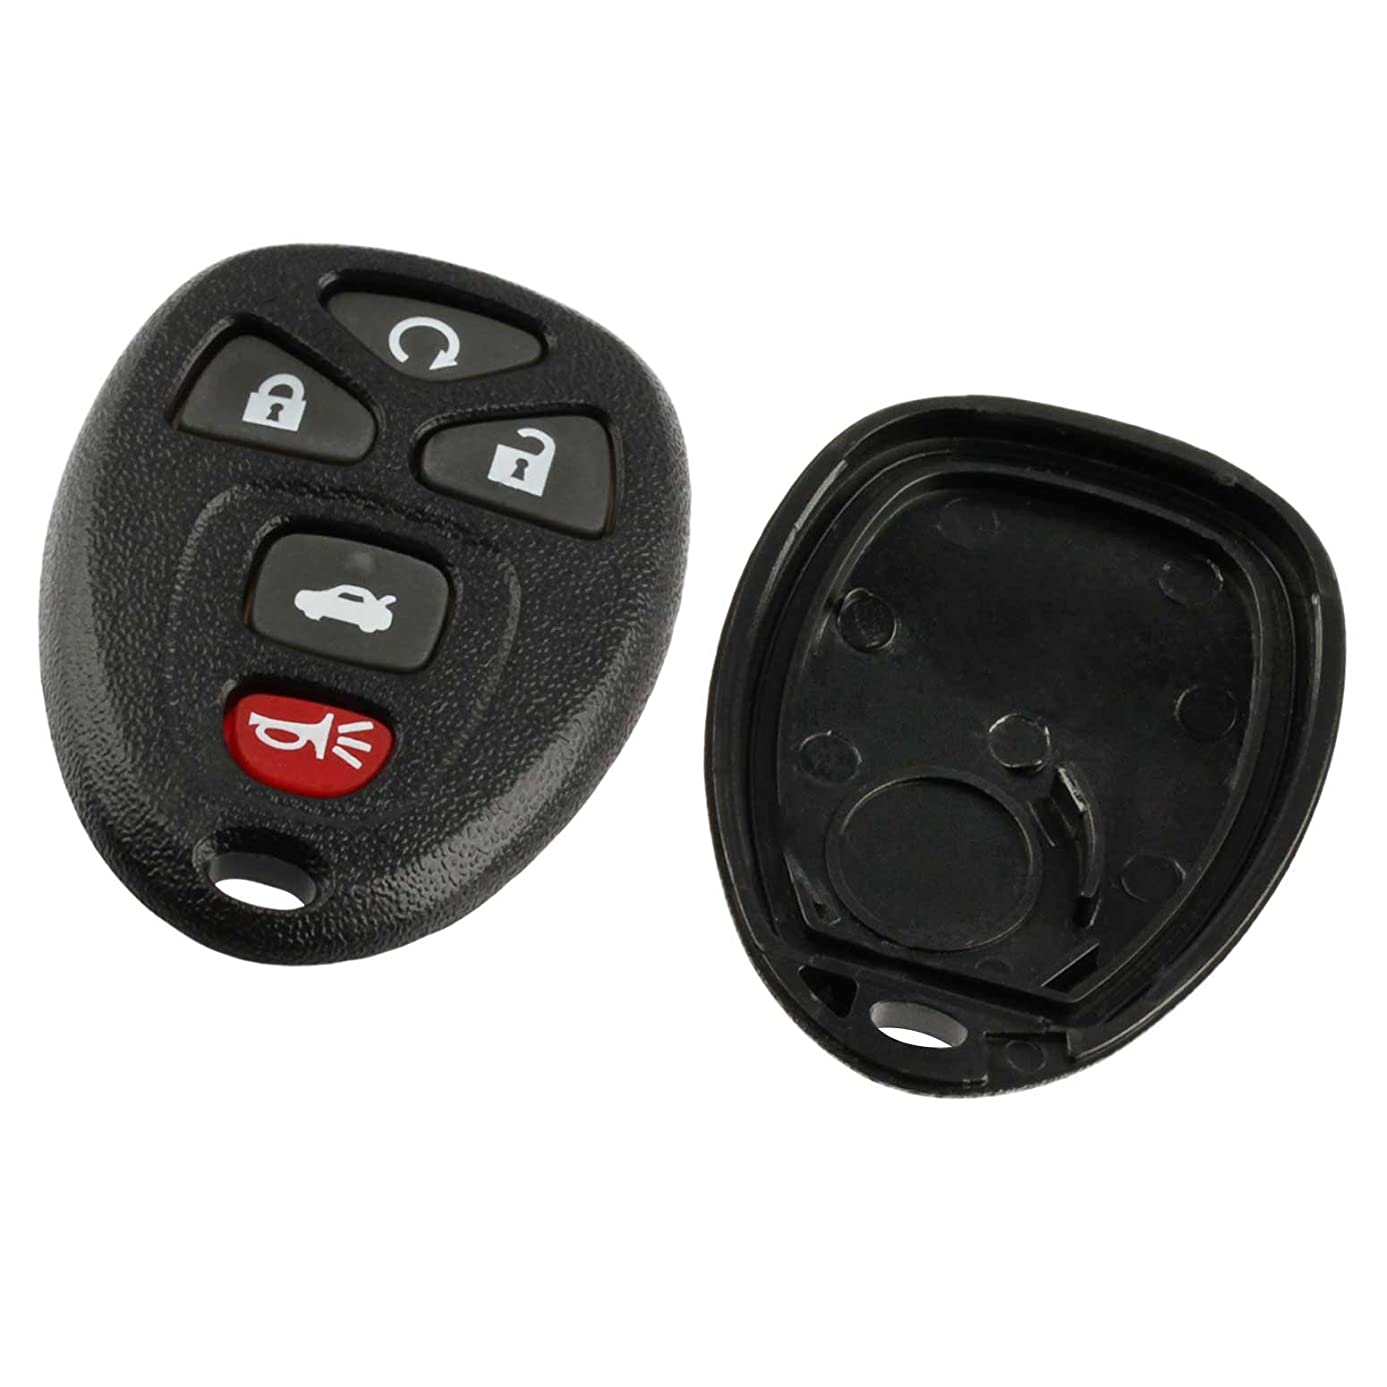 Case Shell Key Fob Keyless Entry Remote fits Buick Lucerne / Chevy Impala Monte Carlo / Cadillac DTS (OUC60270, OUC60221)